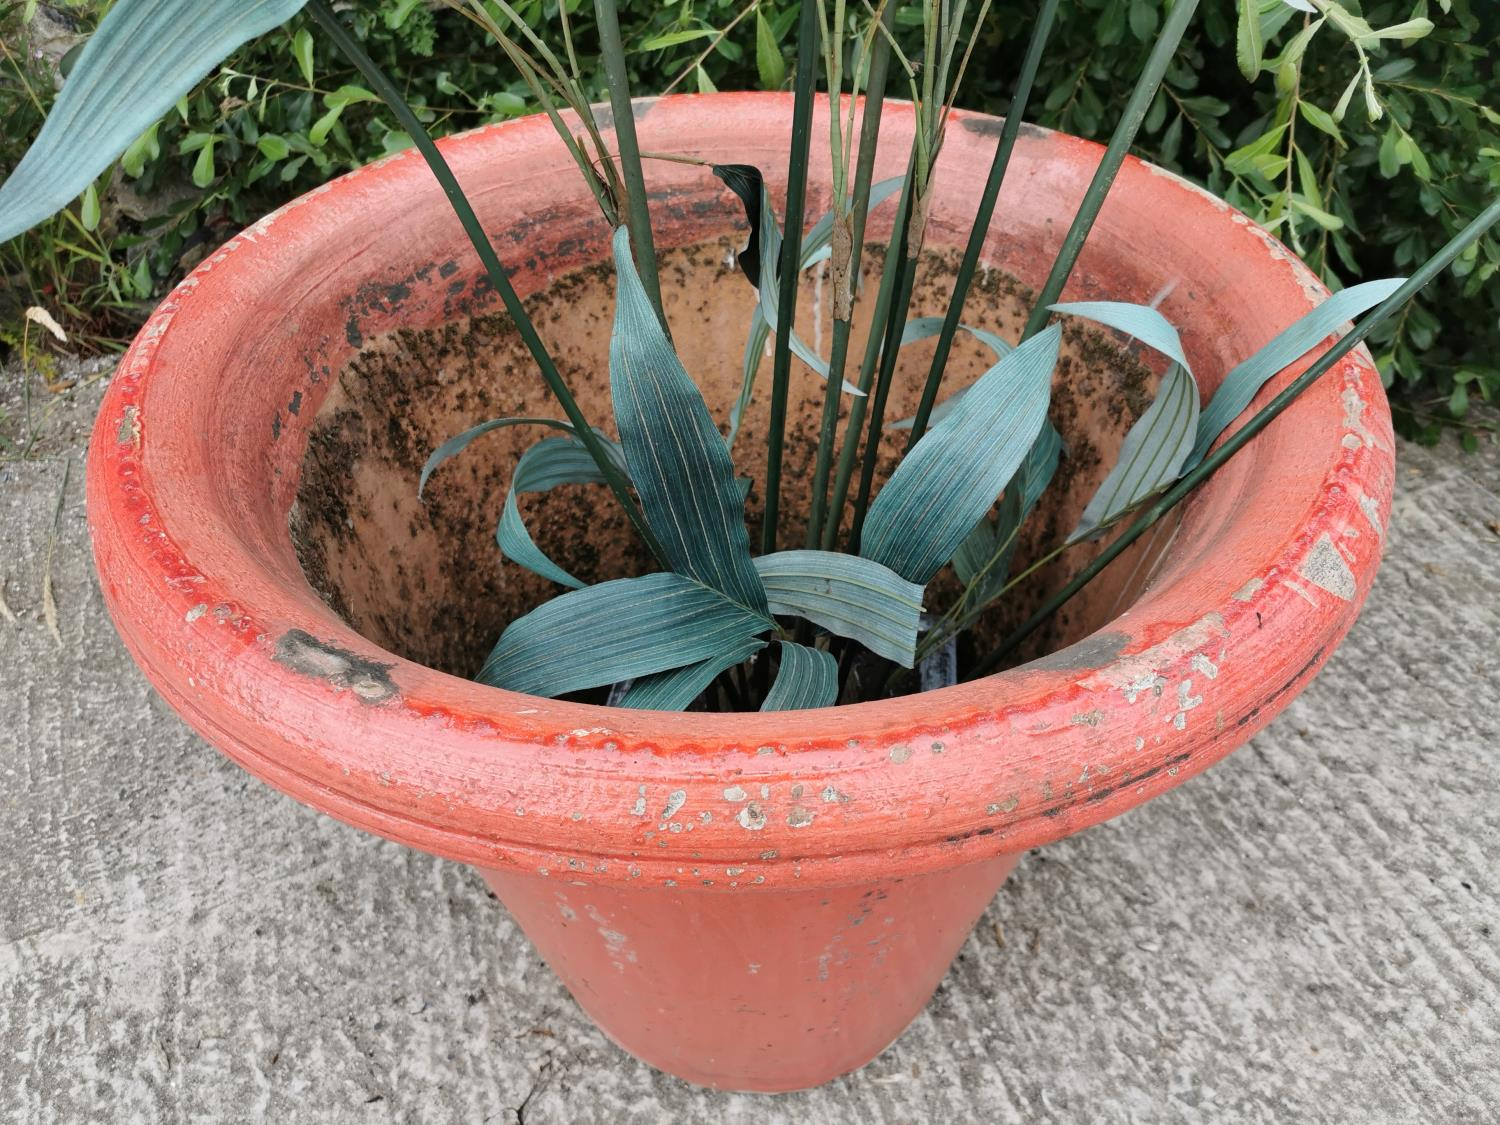 Good quality early 20th C. glazed terracotta planter. - Image 3 of 3